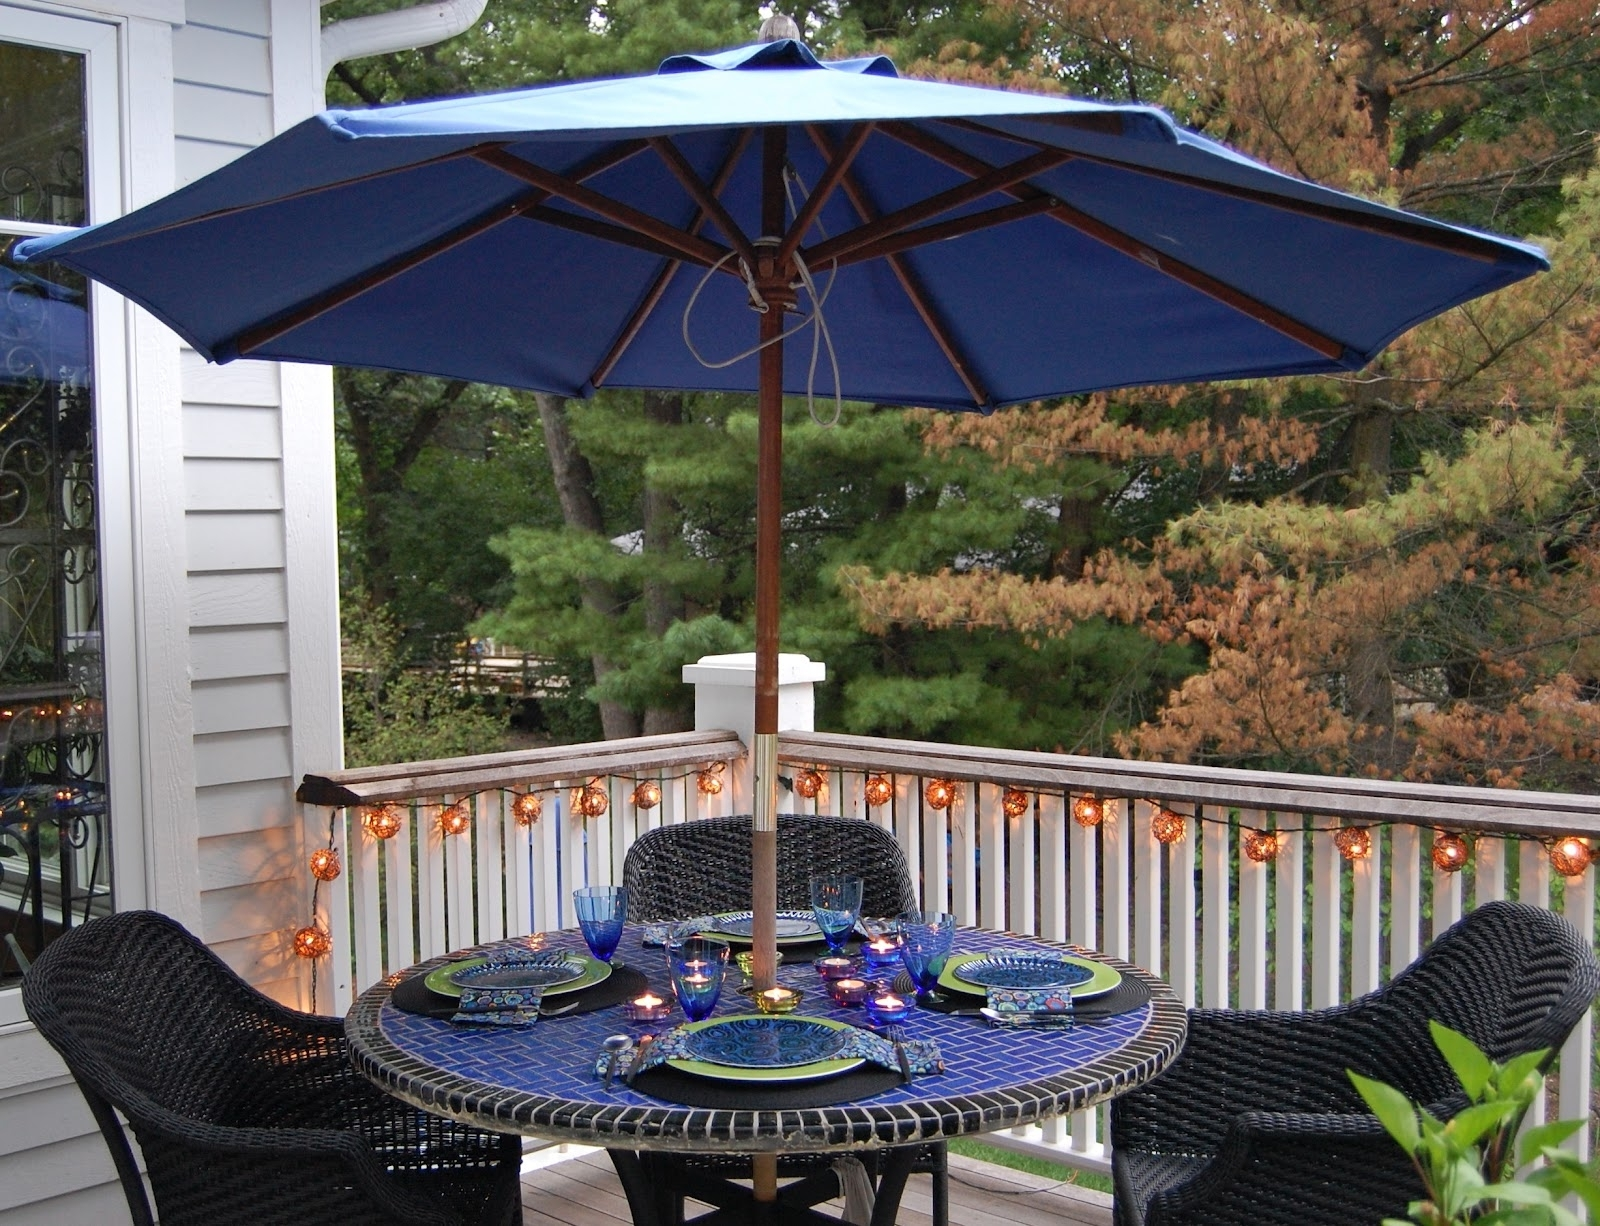 Furniture: Outdoor Outdoor Patio Sets With Umbrella Awesome Design Intended For Fashionable Walmart Patio Umbrellas (View 7 of 20)